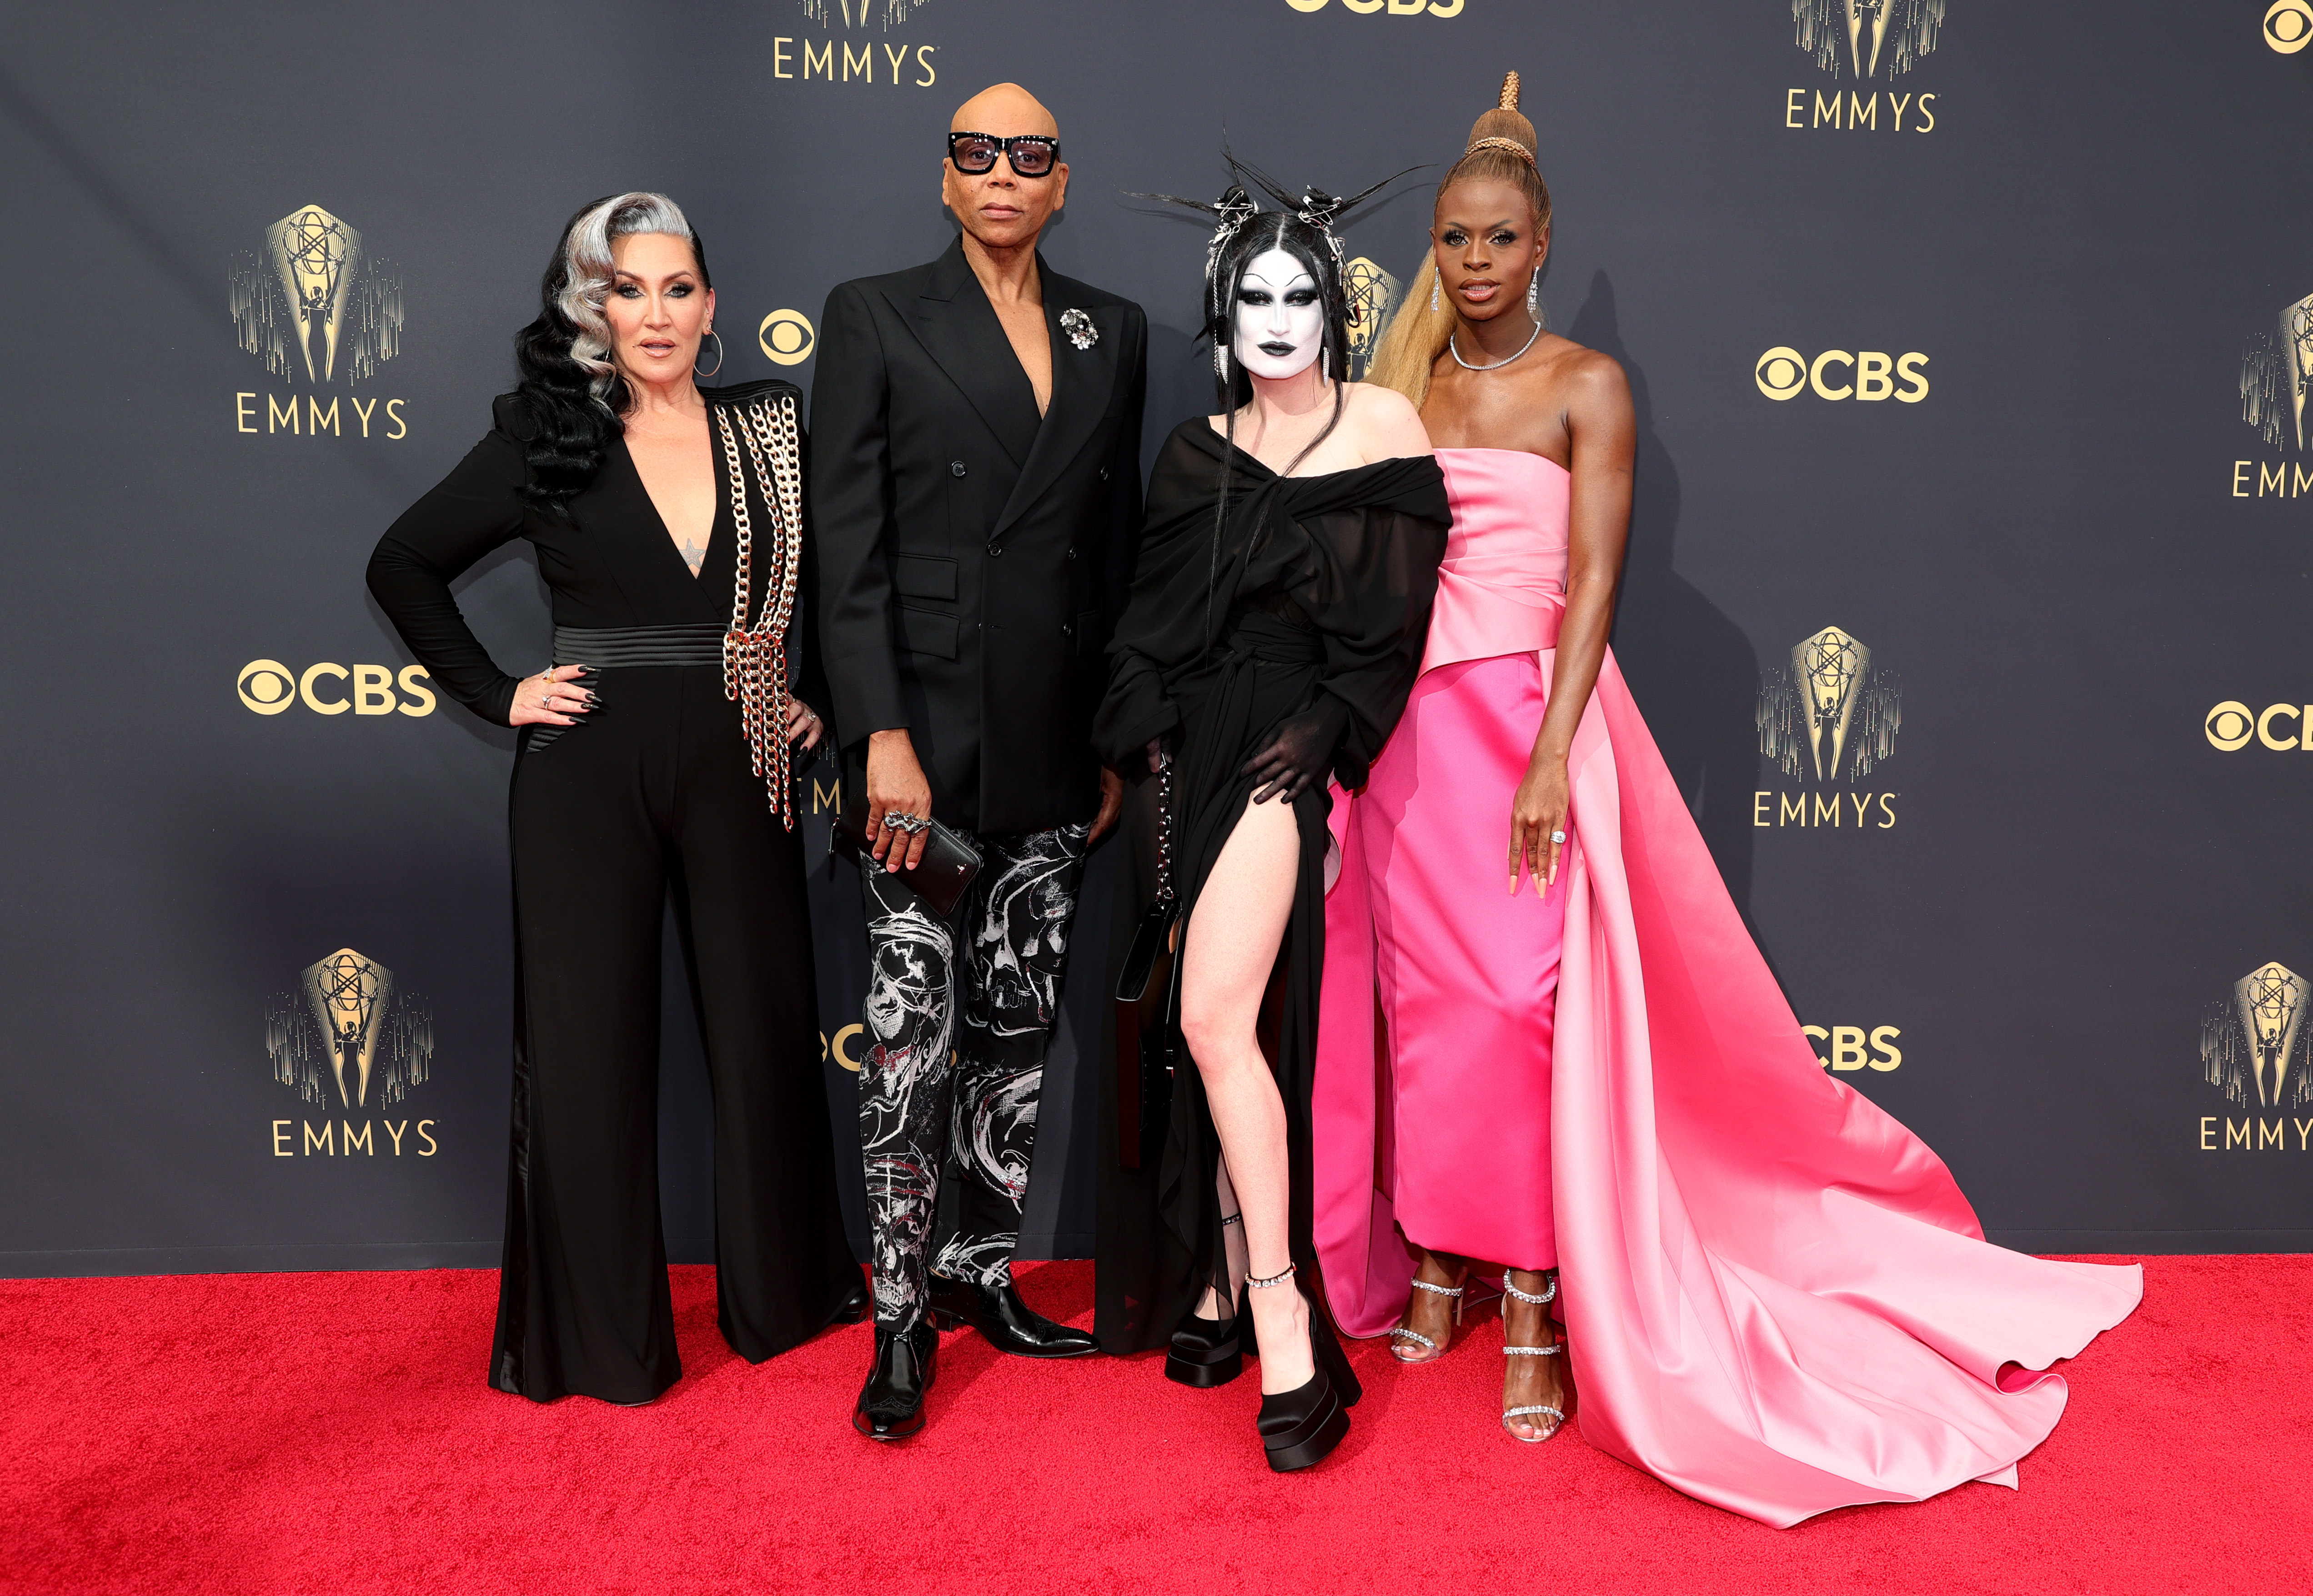 RuPaul and Michelle Visage at an event for The 73rd Primetime Emmy Awards (2021)